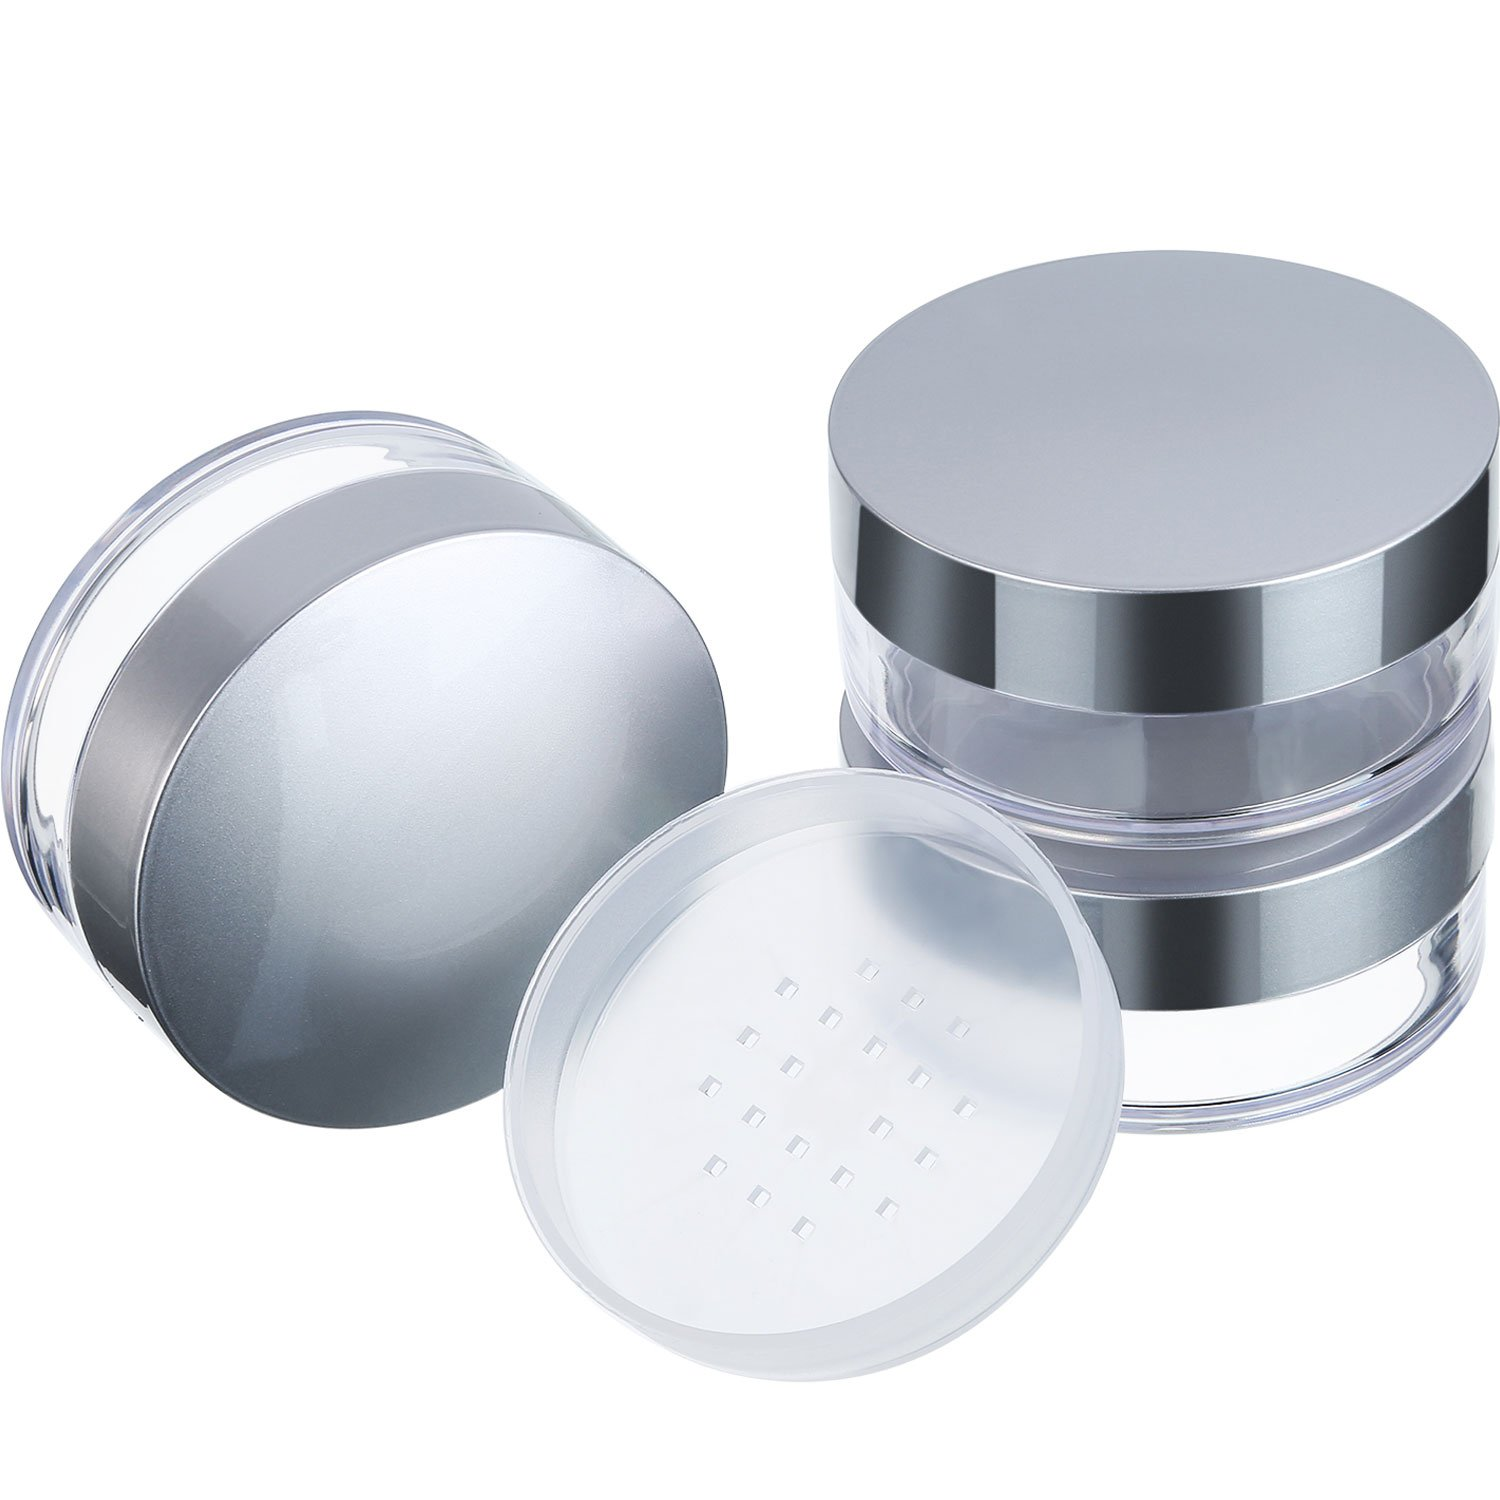 Hotop 3 Pieces 50 ml Plastic Empty Powder Case Face Powder Makeup Jar Travel Kit Blusher Cosmetic Makeup Jars Containers with Sifter and Lids